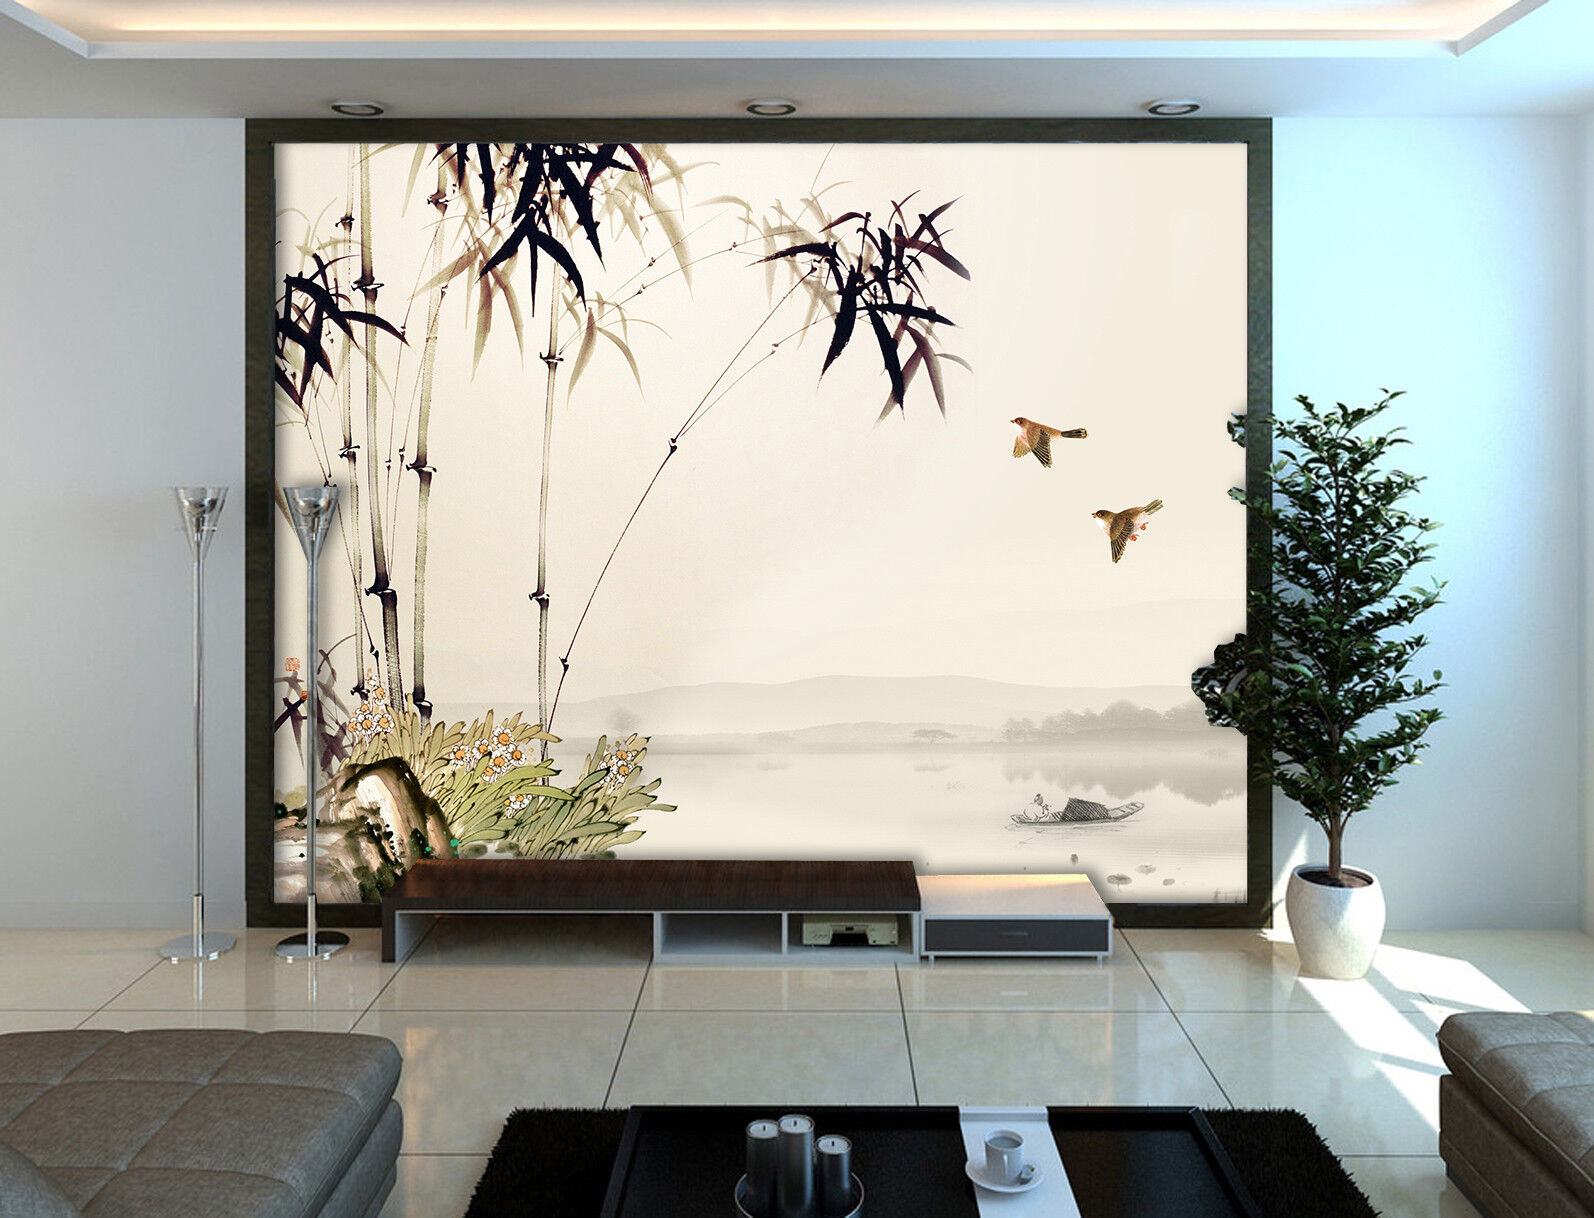 3D Bamboo 42 Wallpaper Murals Wall Print Wallpaper Mural AJ WALL AU Kyra